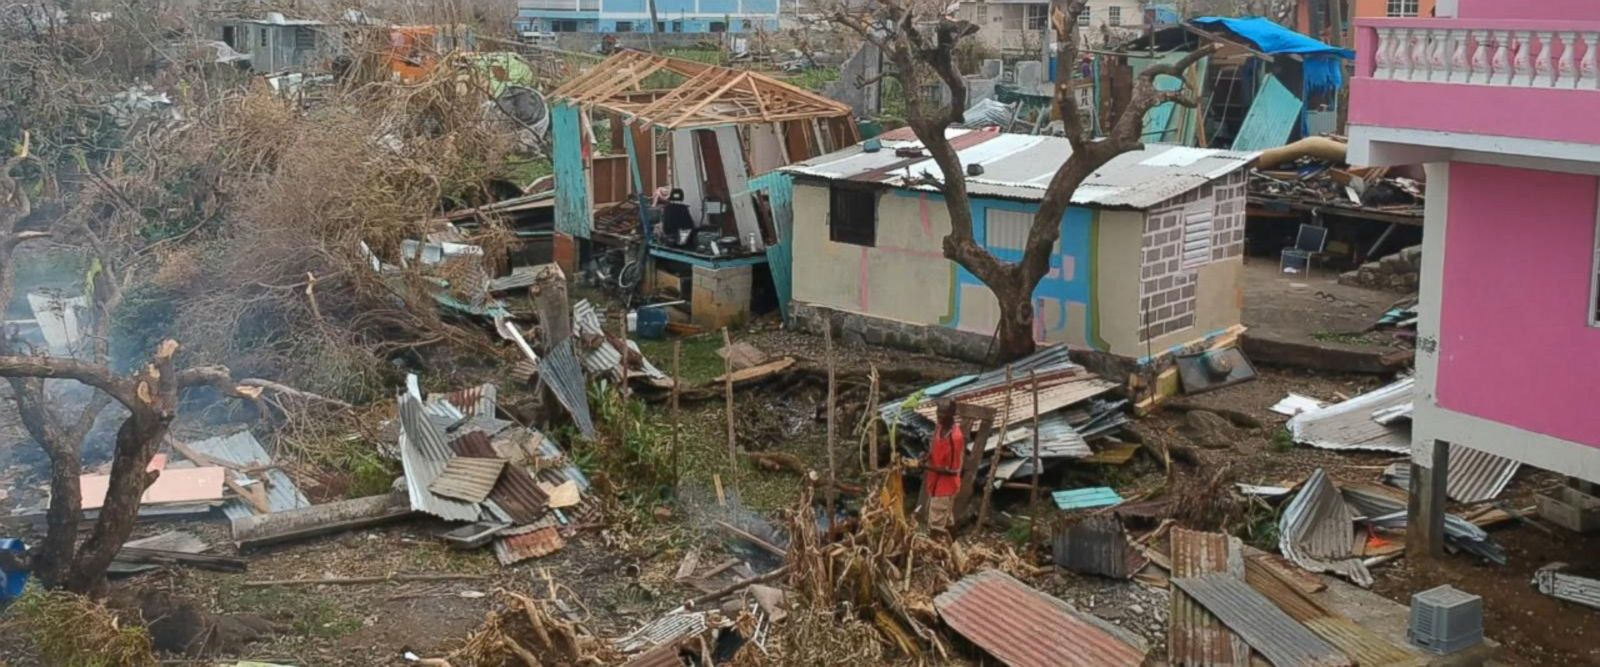 VIDEO: Dominica, struggling to survive 1 month after Hurricane Maria